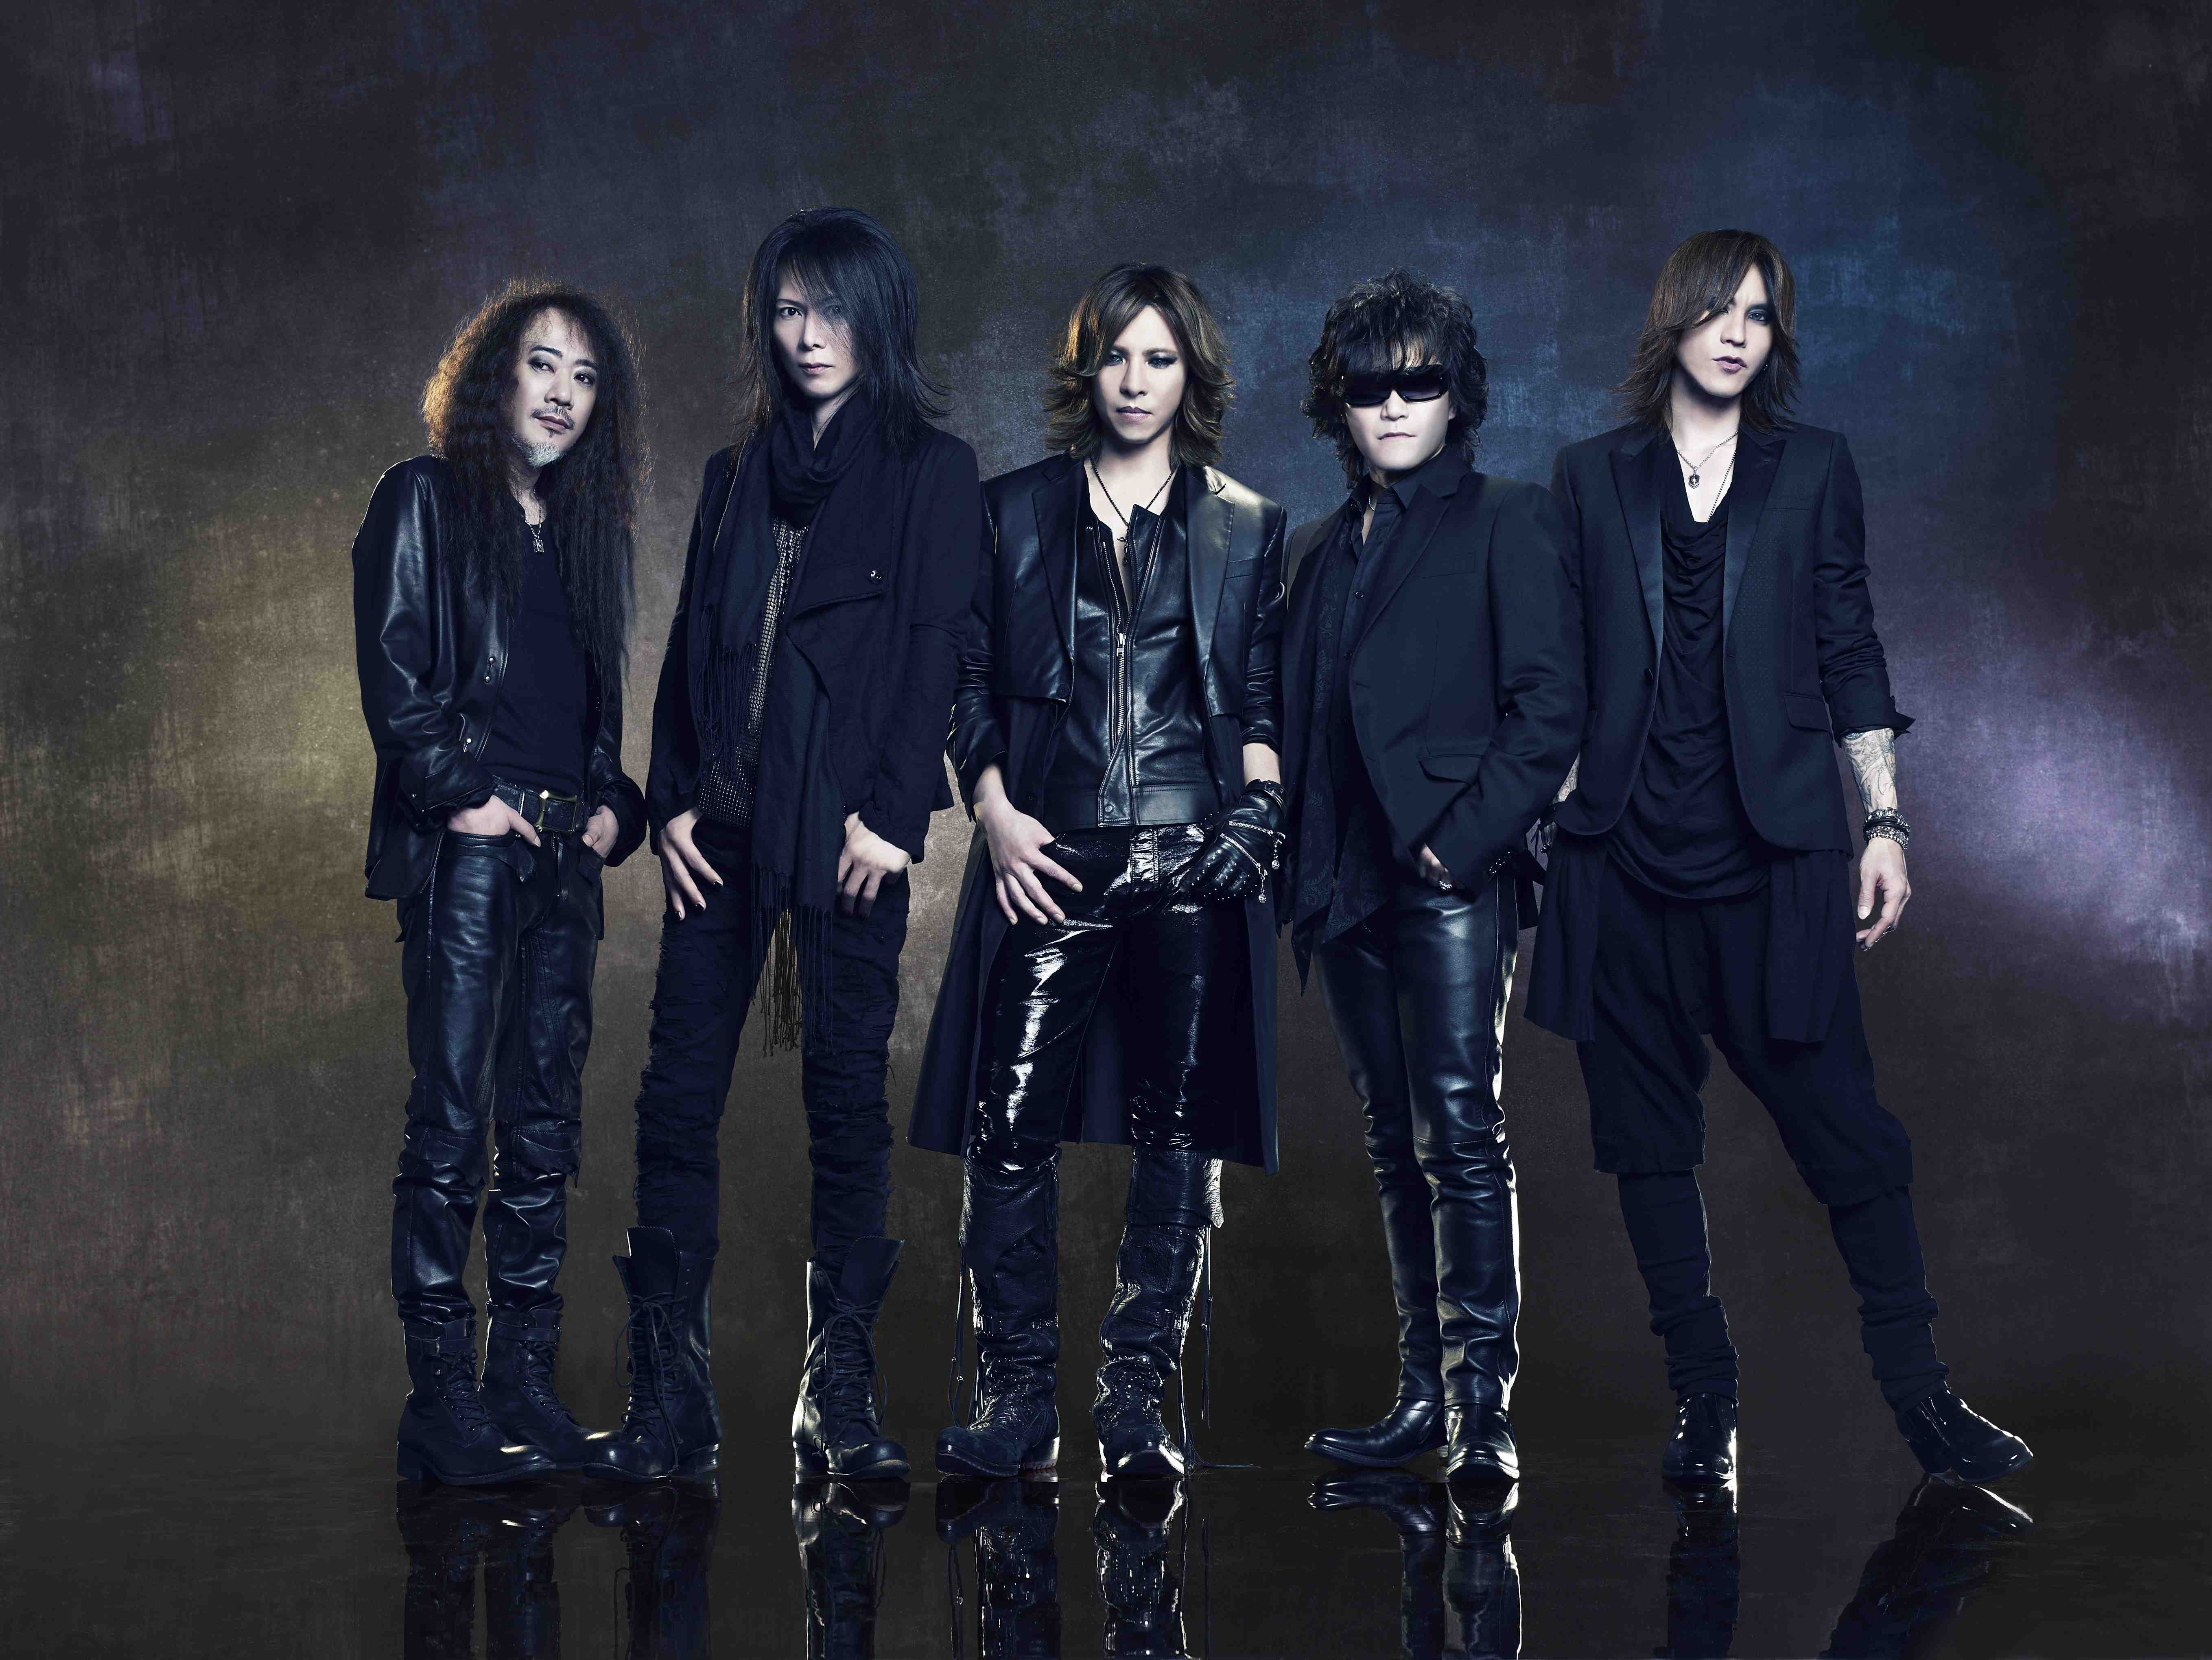 X JAPAN MSG Artist Photo_Full Band_lores